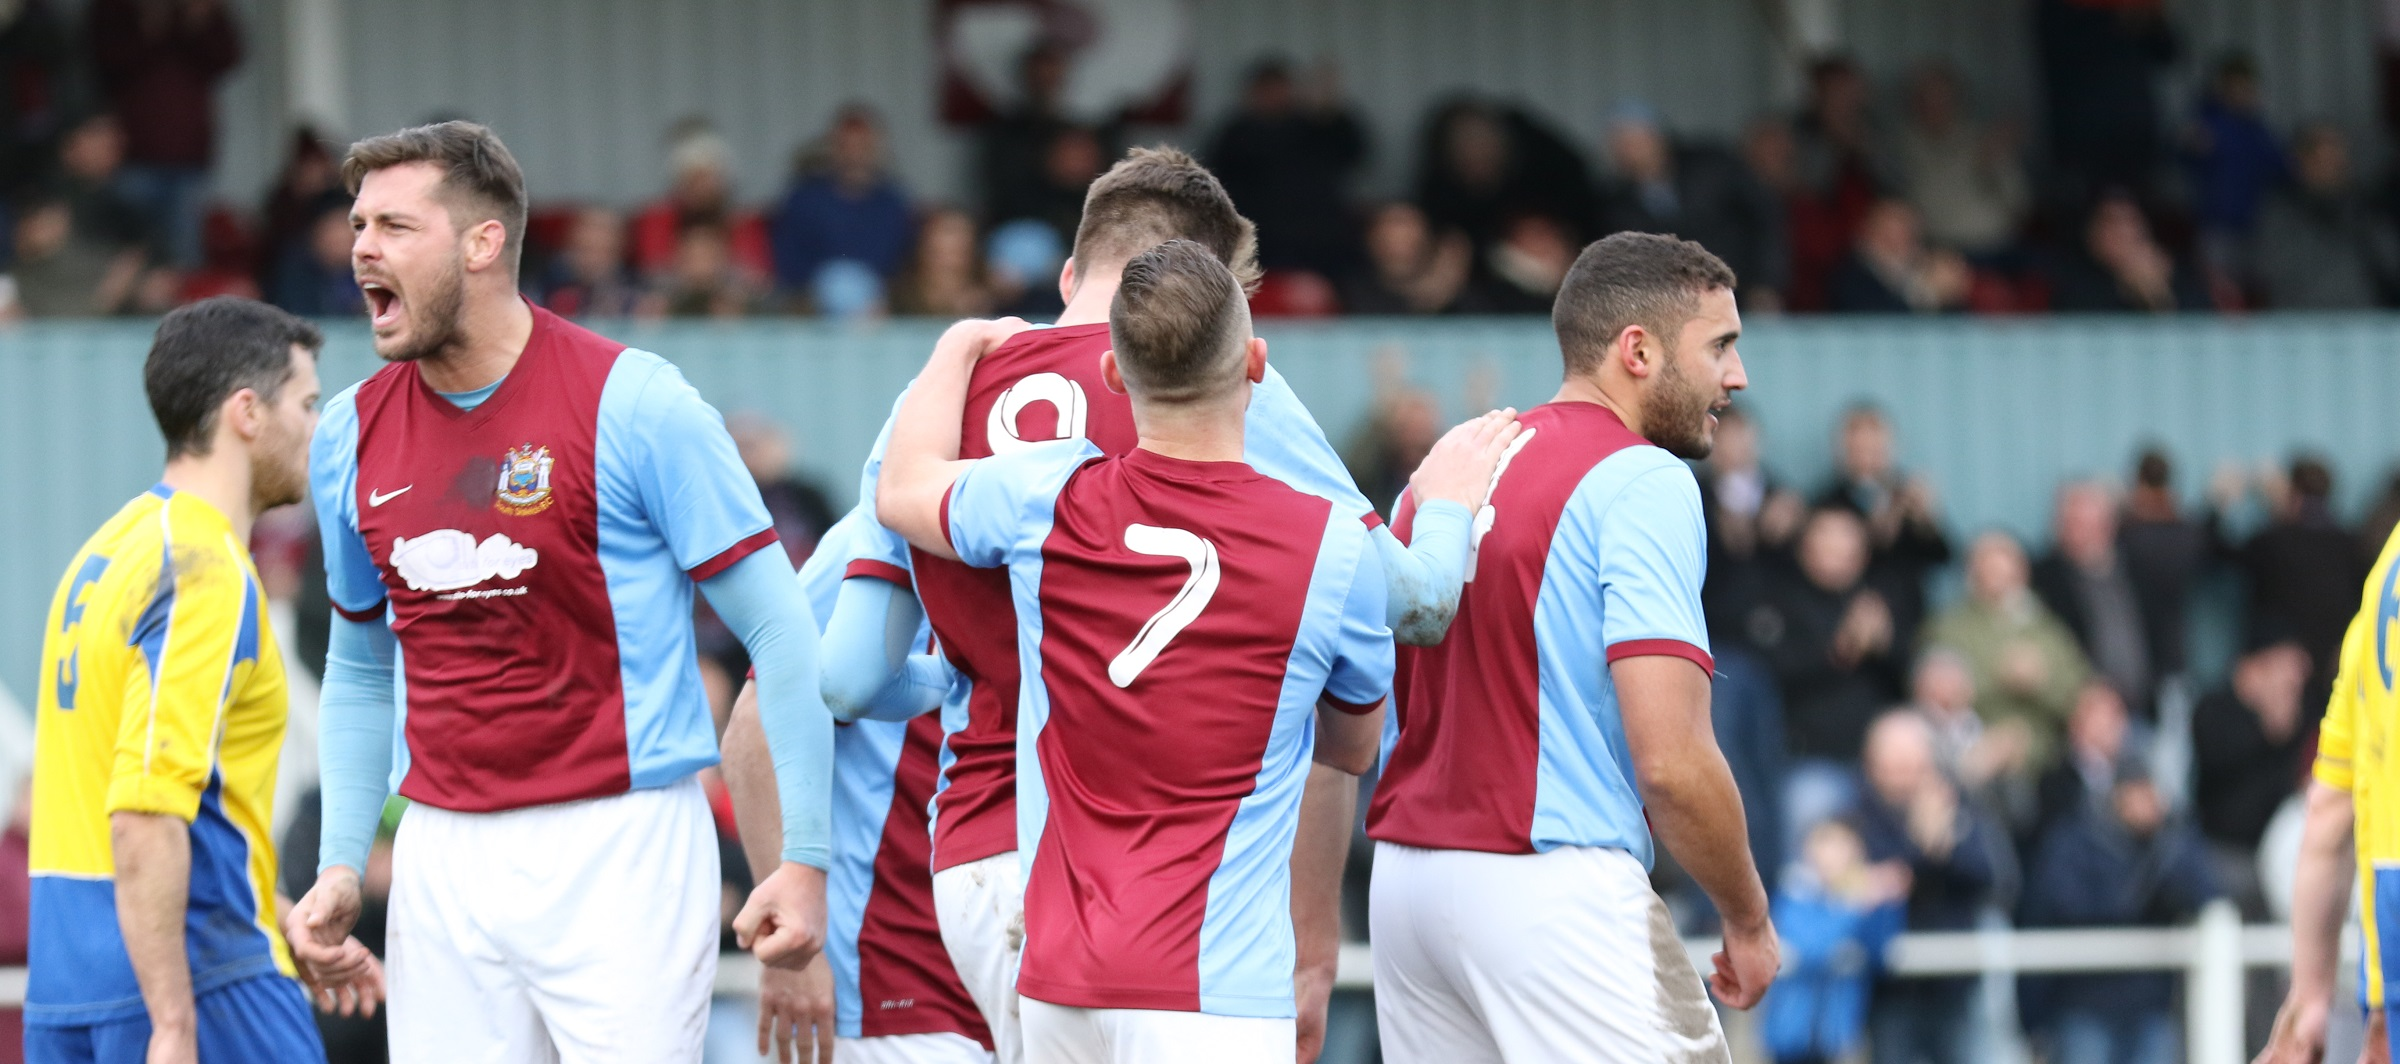 VIDEO: Daryll Hall – Win over Chester-le-Street was vital for team morale